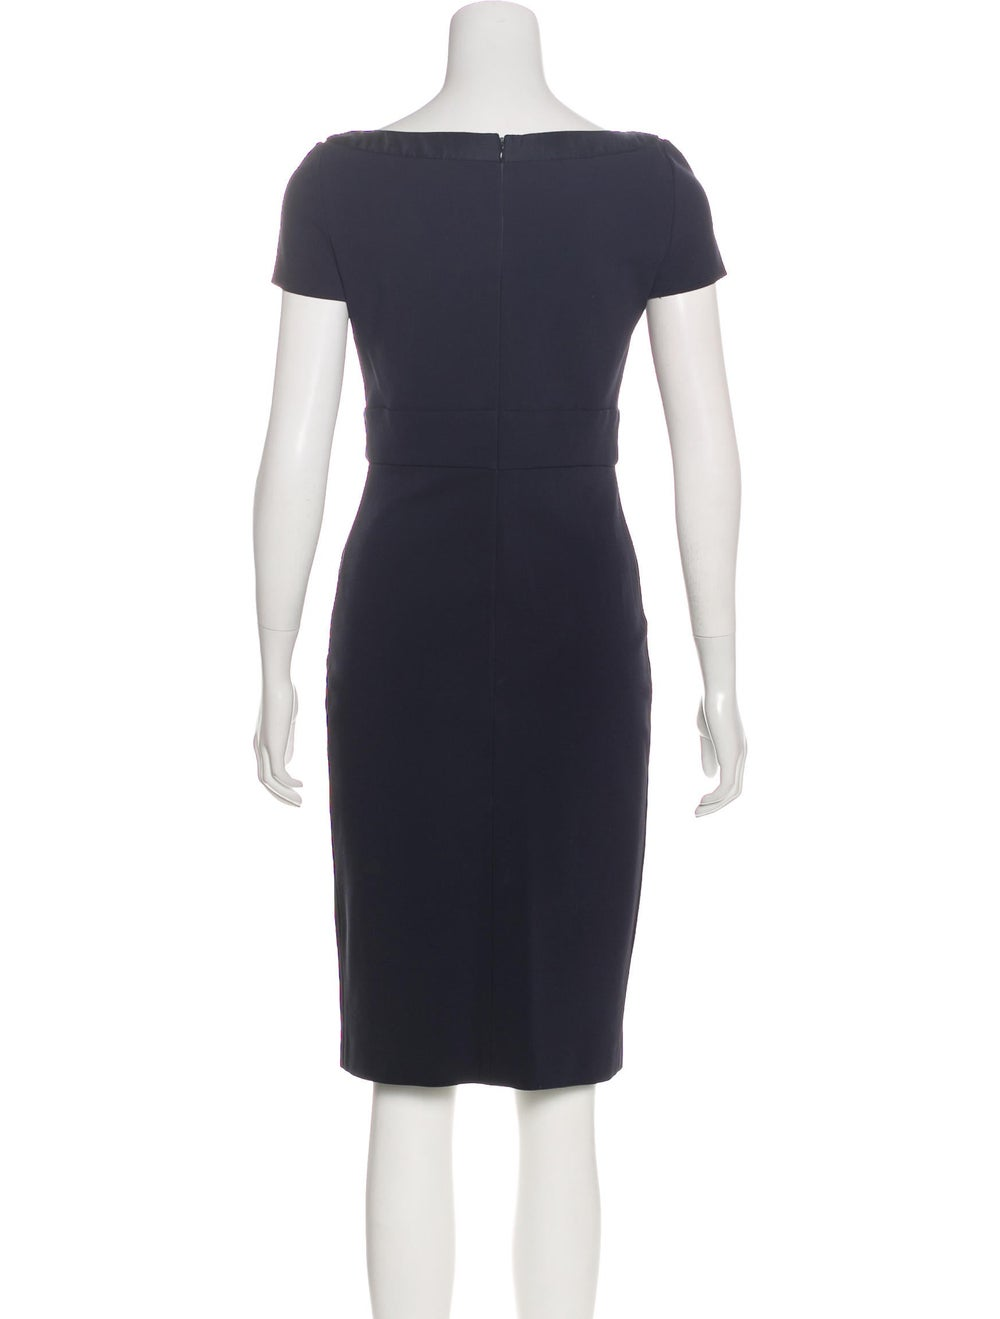 Valentino Accented Sheath Dress - image 3